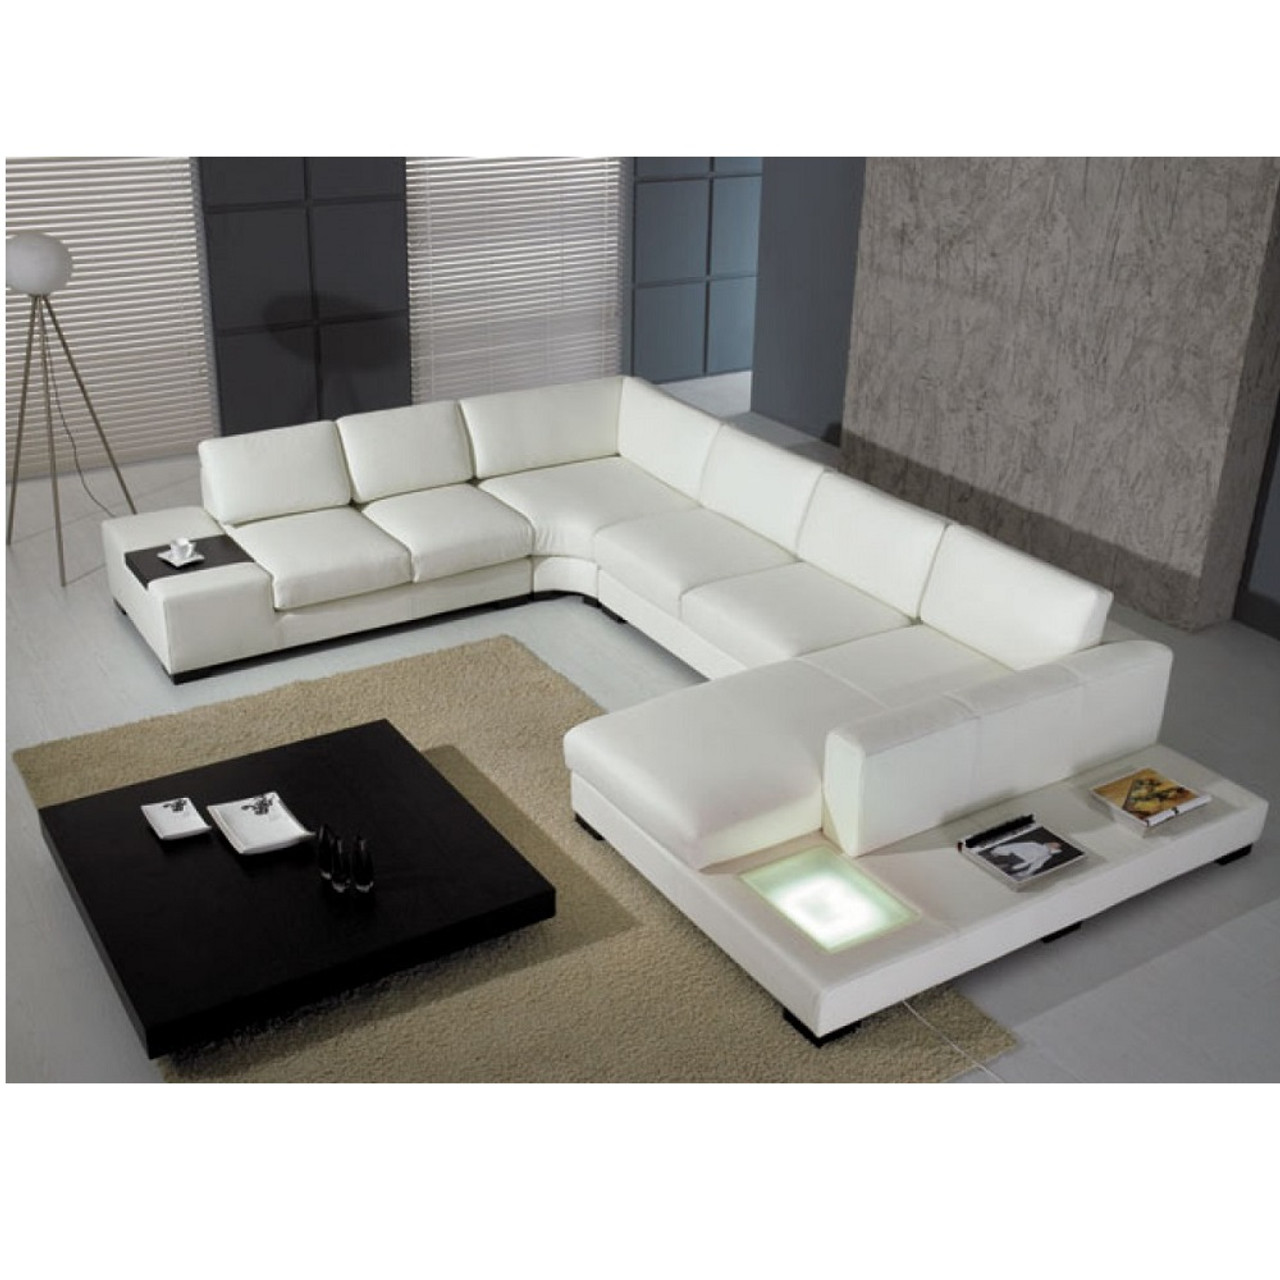 Marvelous Divani Casa T35 White Italian Leather Sectional Sofa With Light Andrewgaddart Wooden Chair Designs For Living Room Andrewgaddartcom